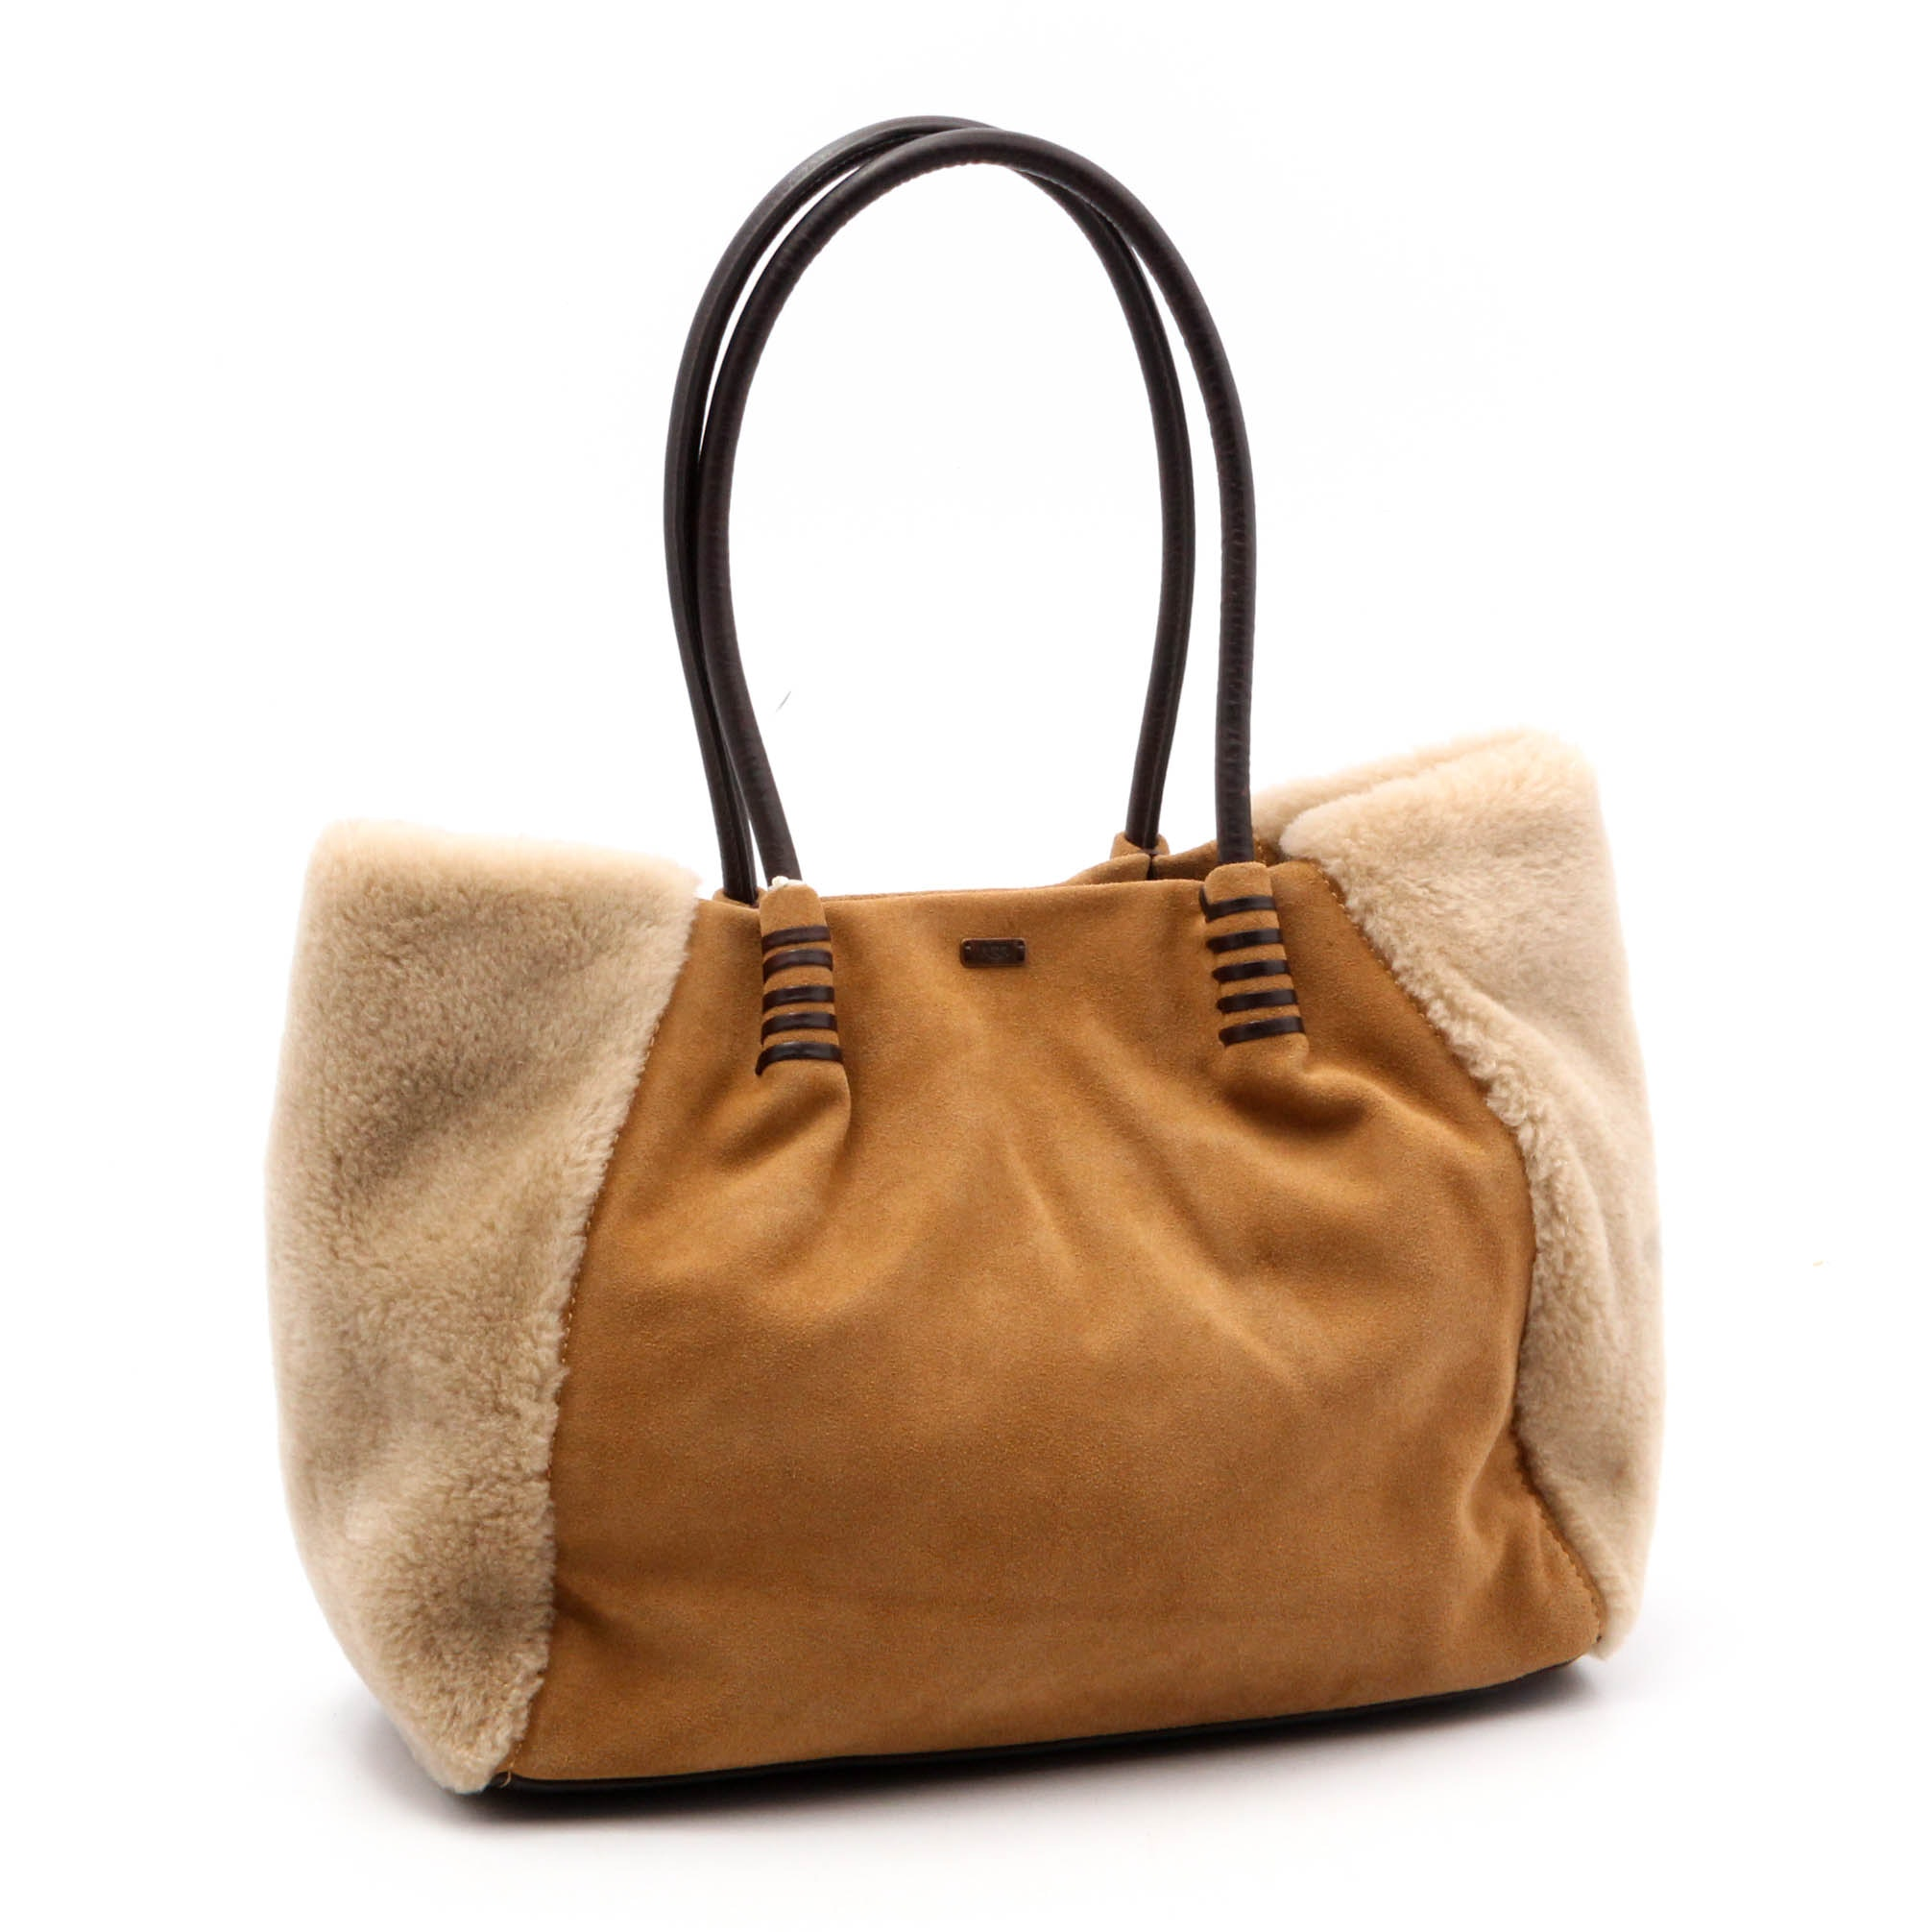 UGG Australia Heritage Shearling Tote